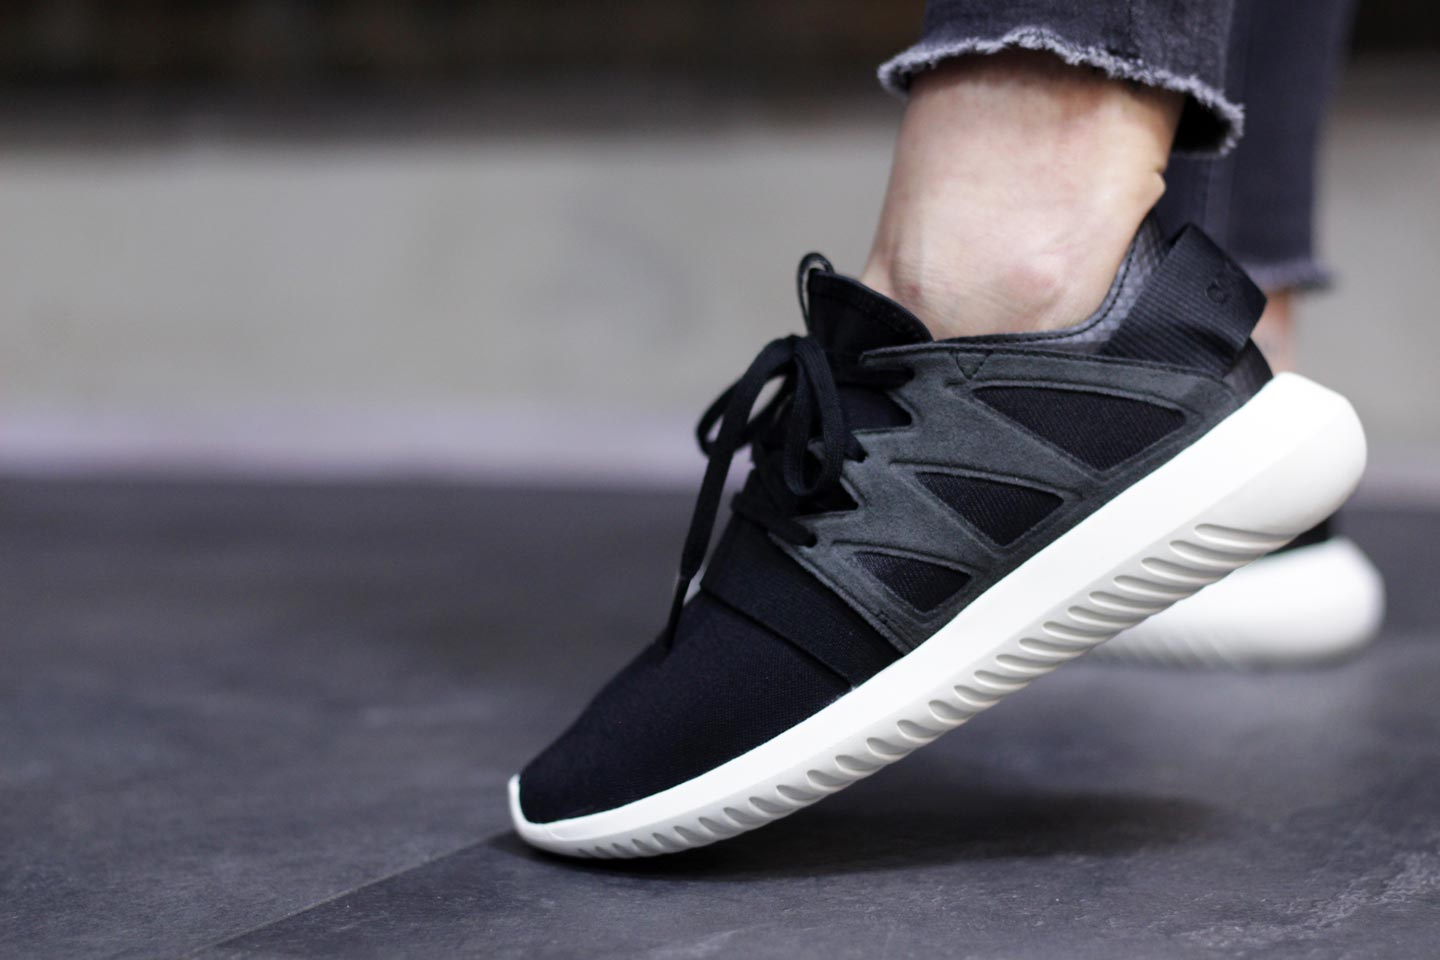 Archive Adidas Tubular Runner Sneakerhead s 79434